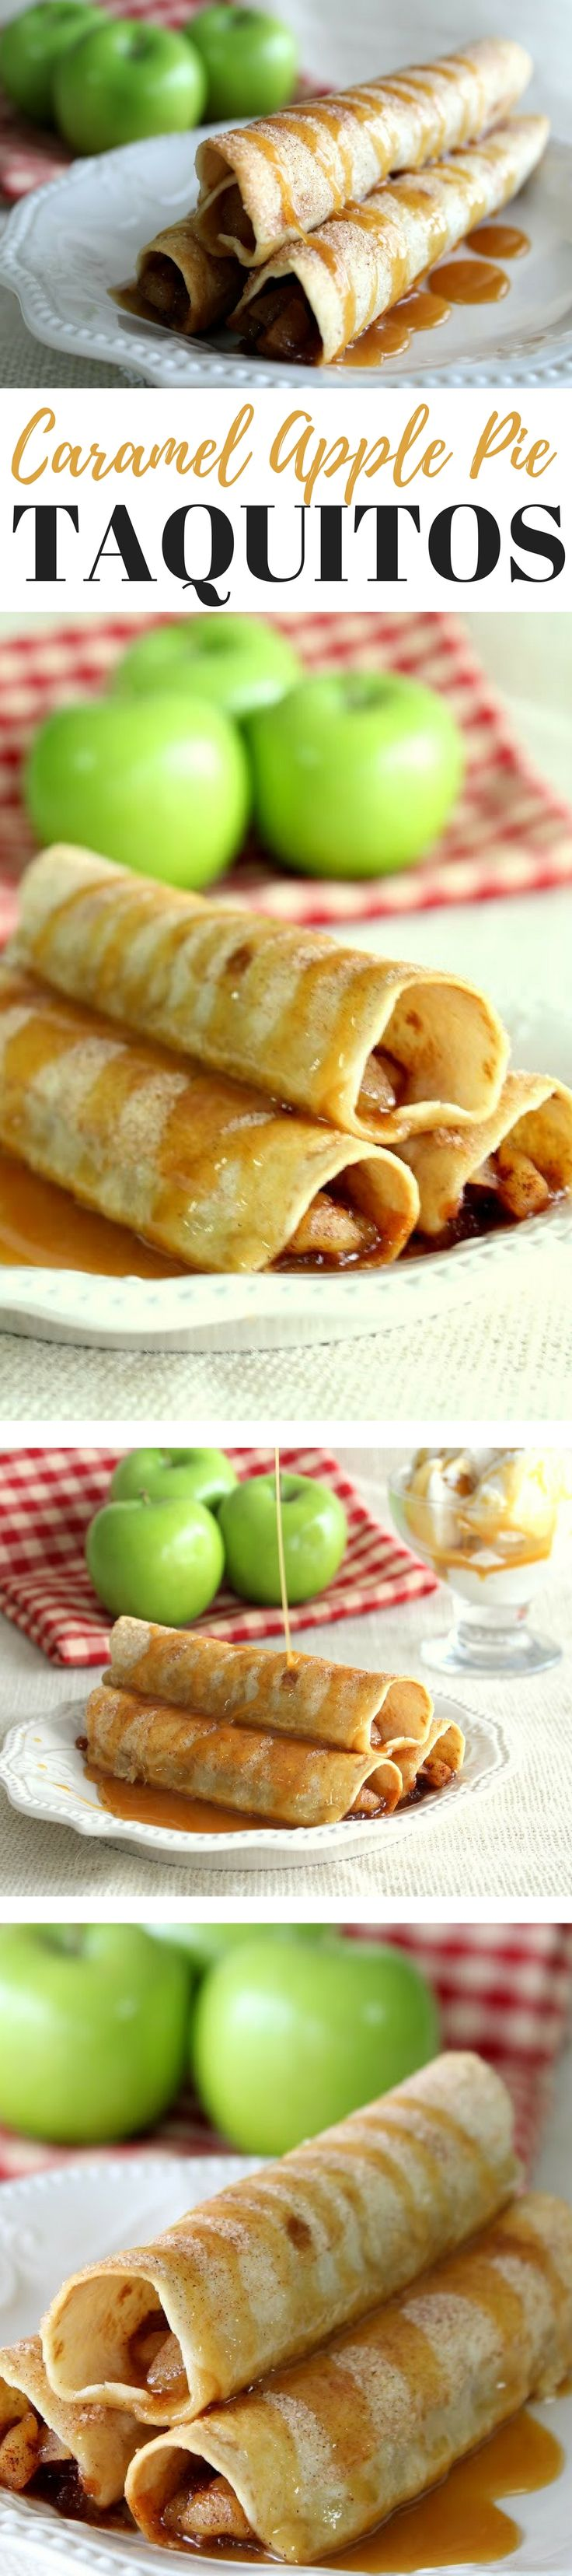 Apples with cinnamon sugar drizzled with caramel and wrapped in a crispy tortilla... yes, please! What is there not to love about this easy and delicious dessert? Top it off with some vanilla ice cream and you have a dessert fit for a king.